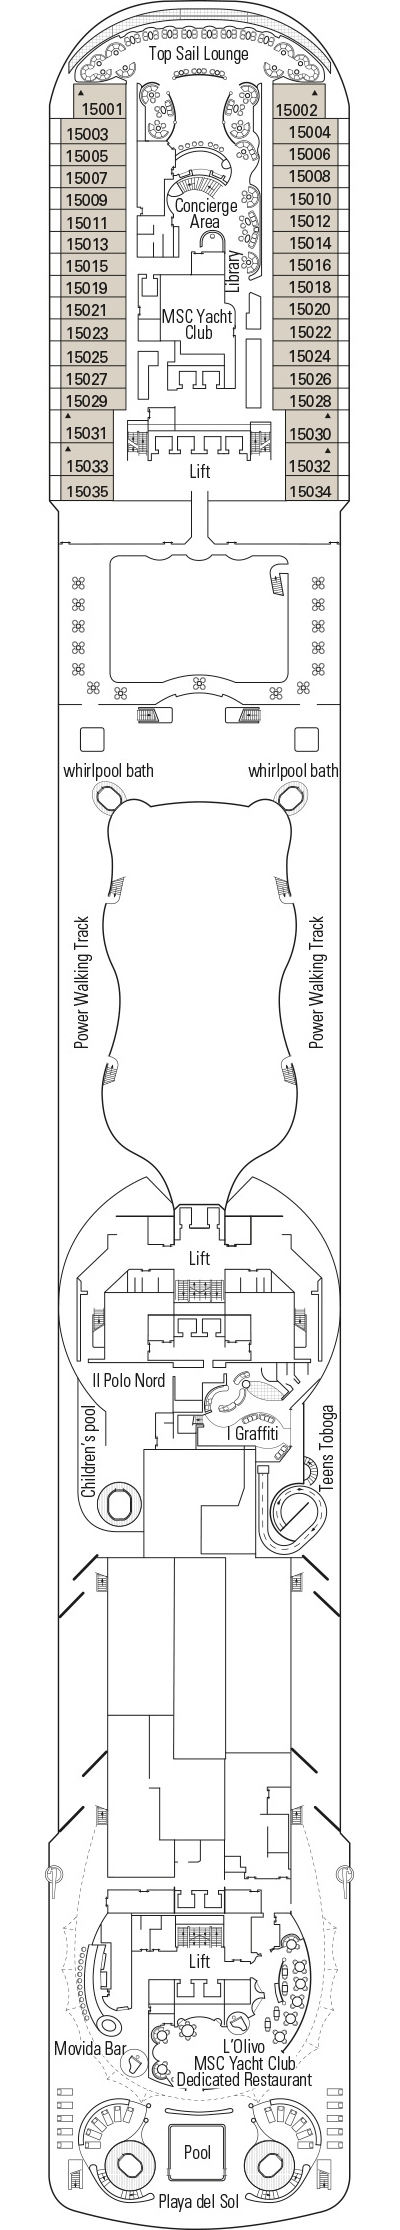 MSC Splendida Deck 15 - Leonardo Da Vinci layout